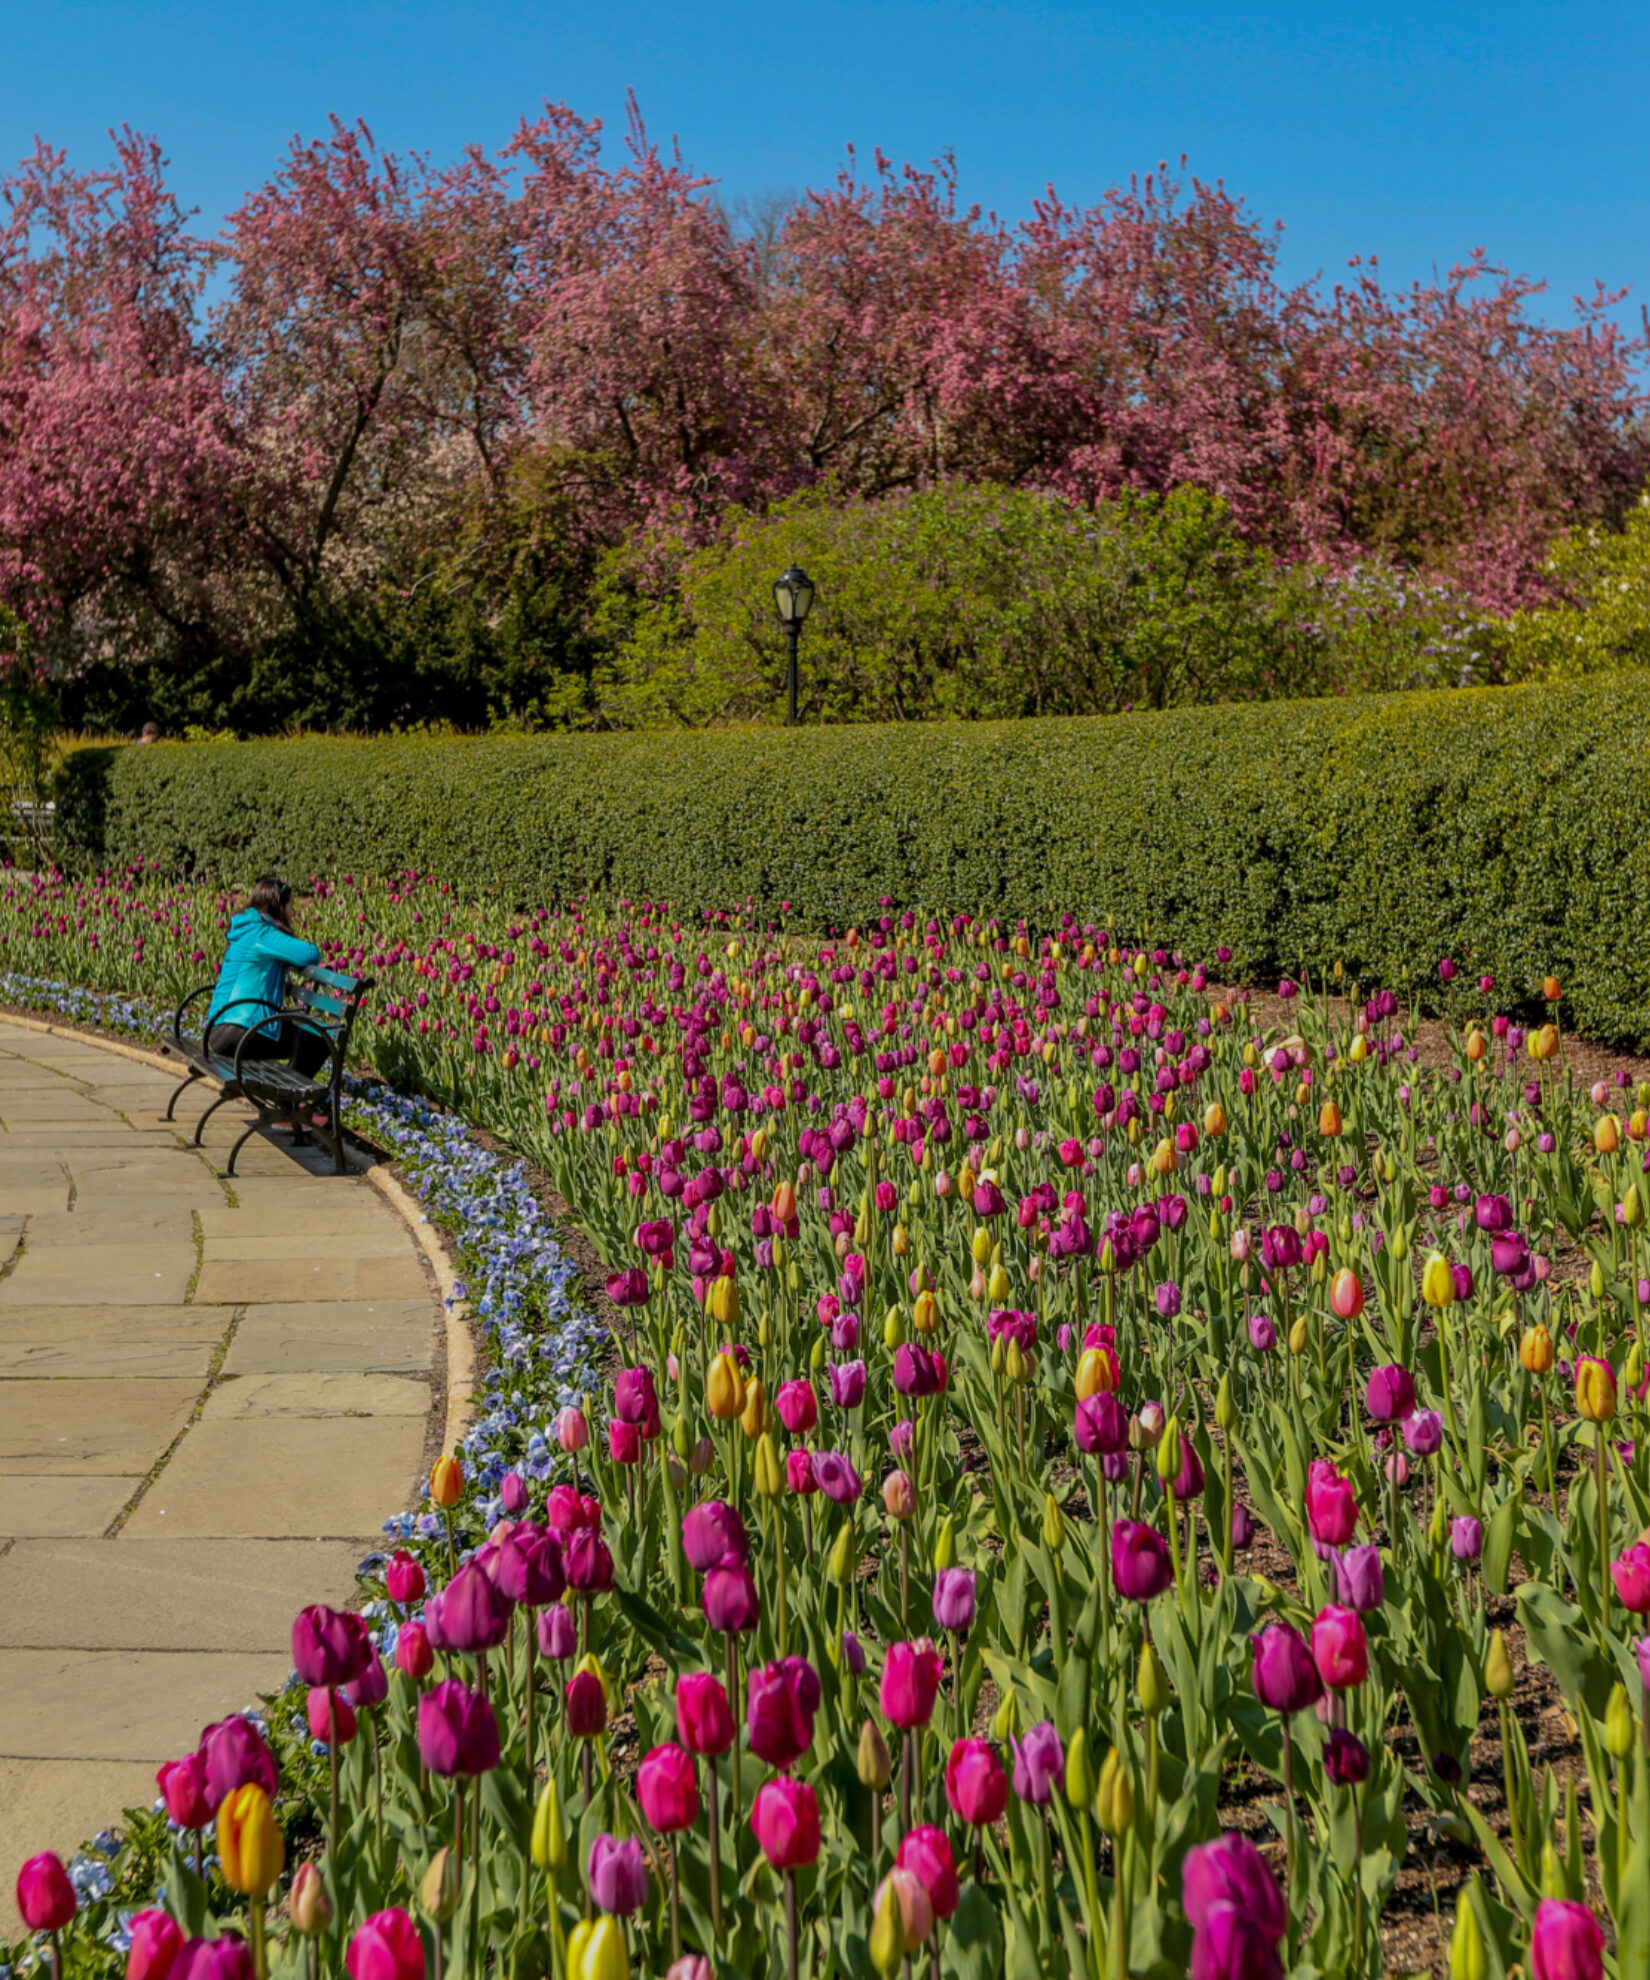 The sweeping curve of the circular garden crowded with purple and yellow blooms.